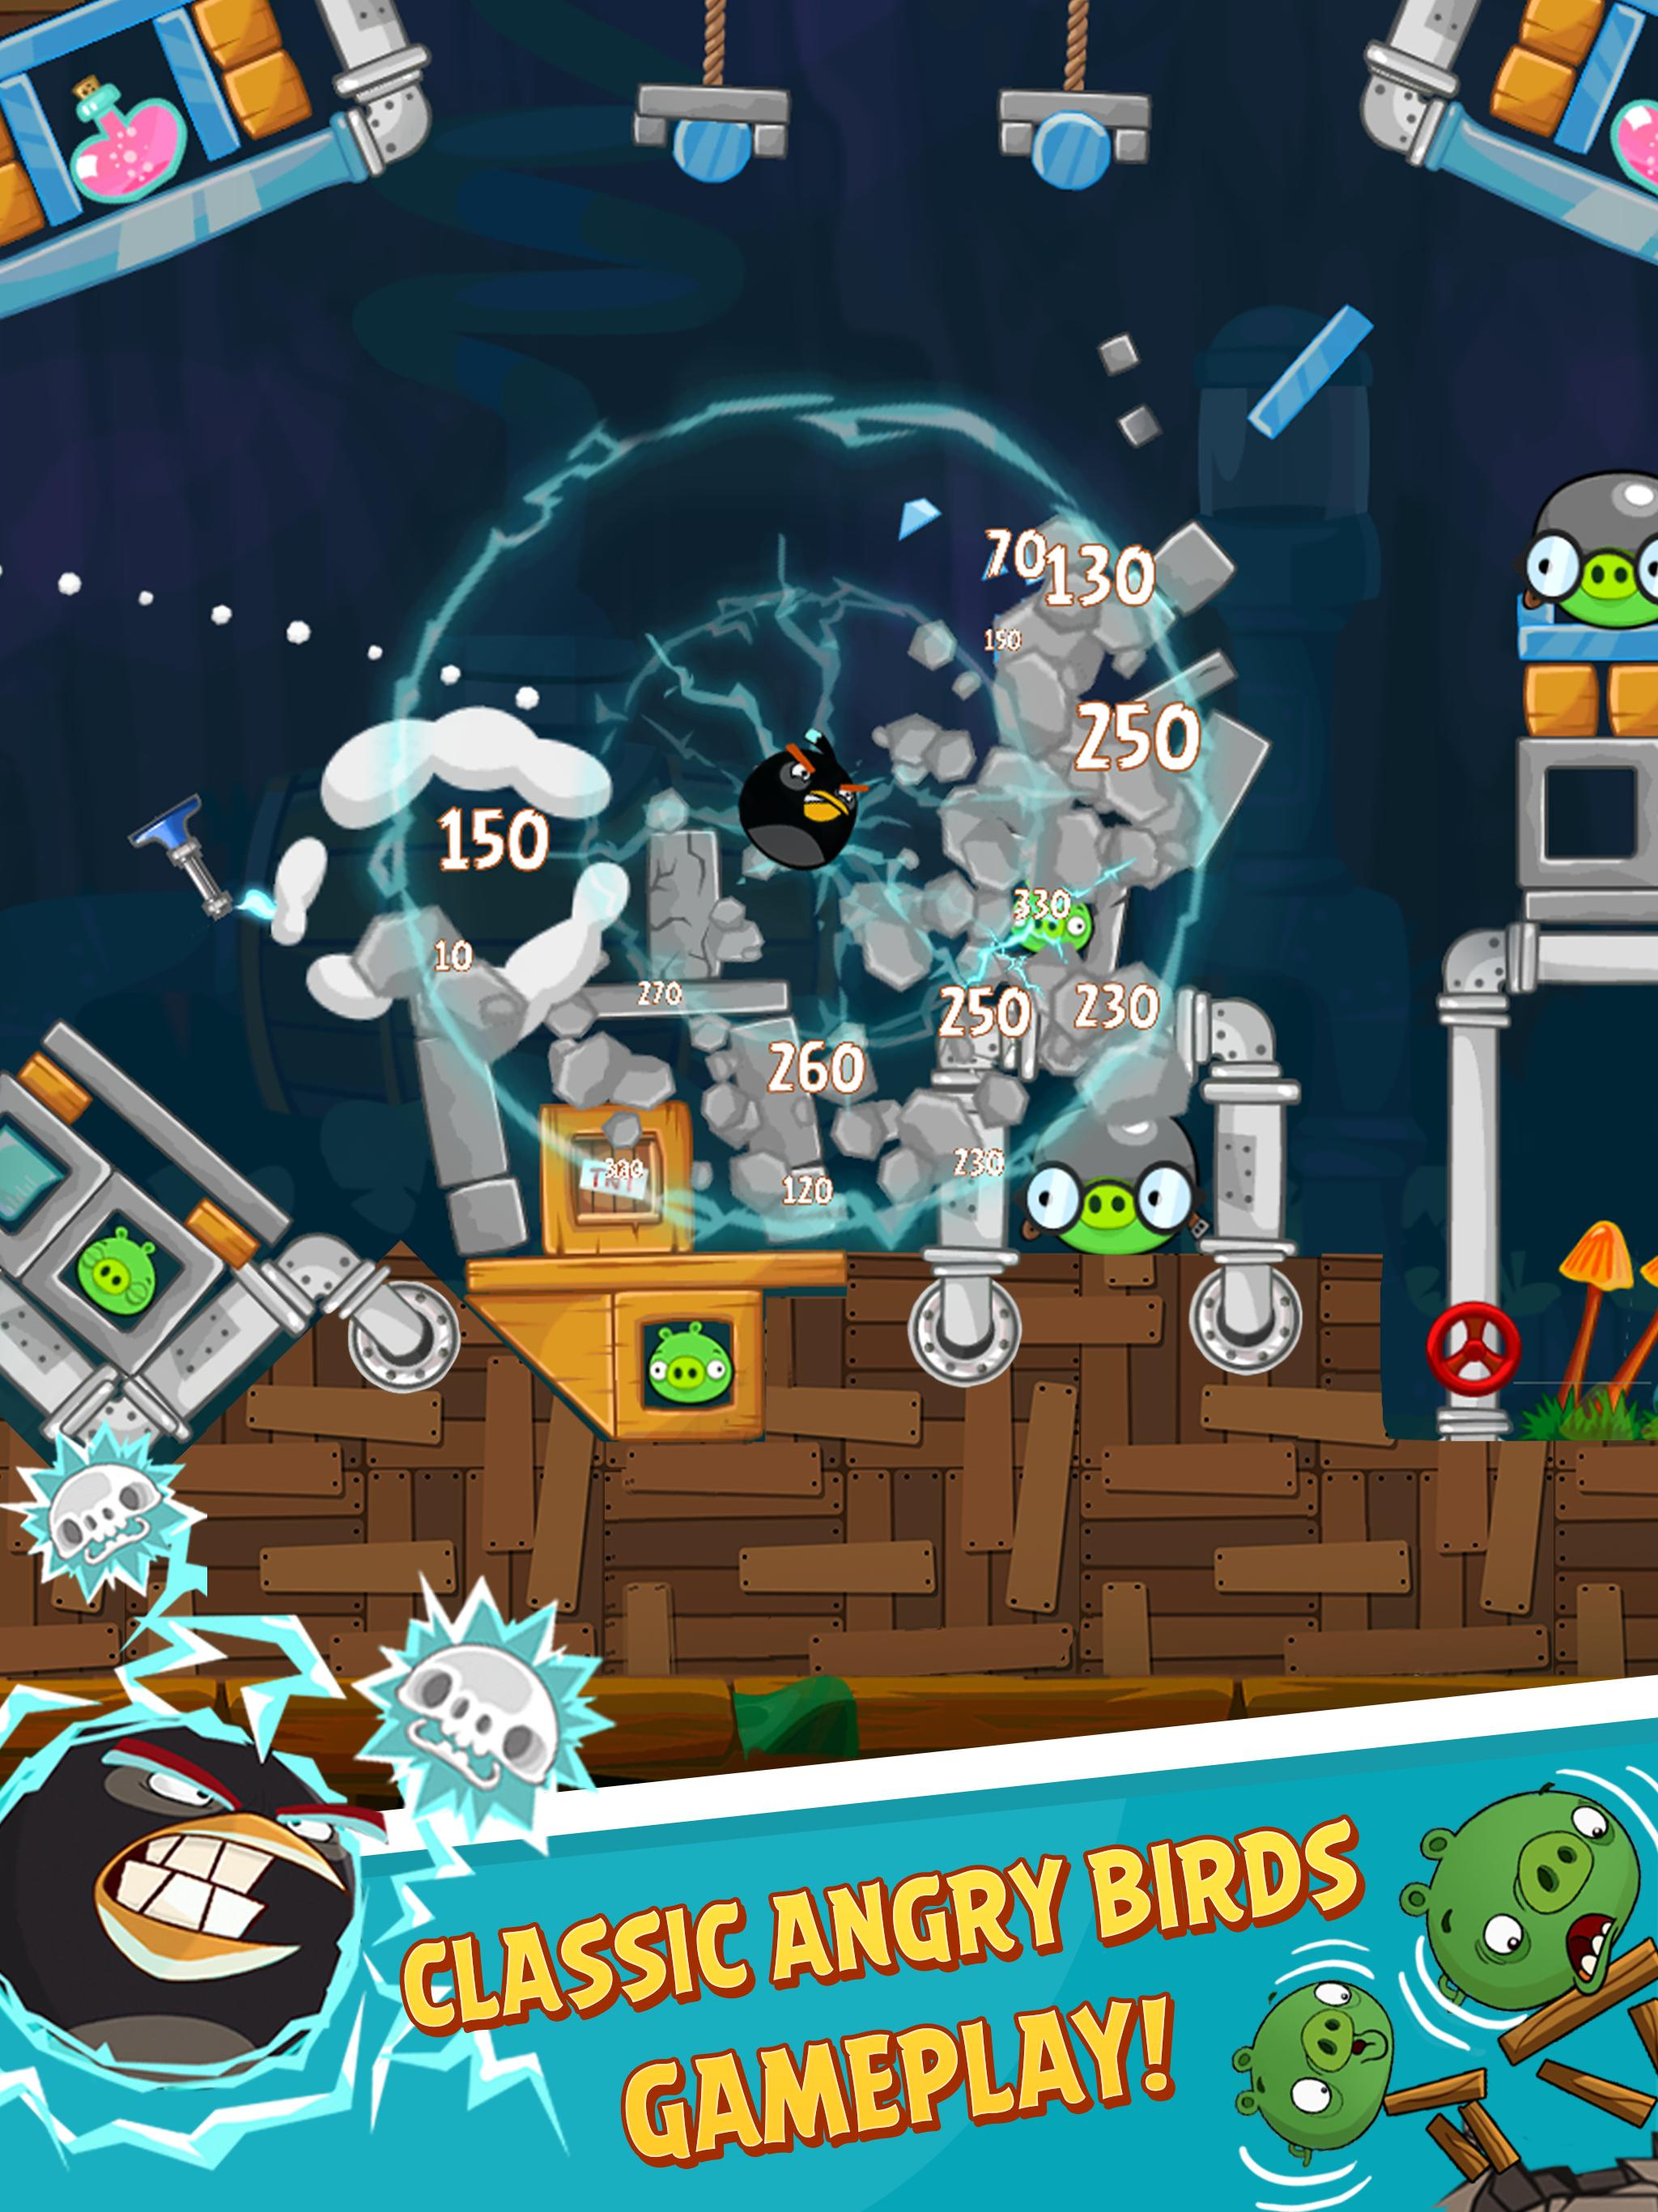 Angry Birds Classic 8.0.3 Screenshot 9